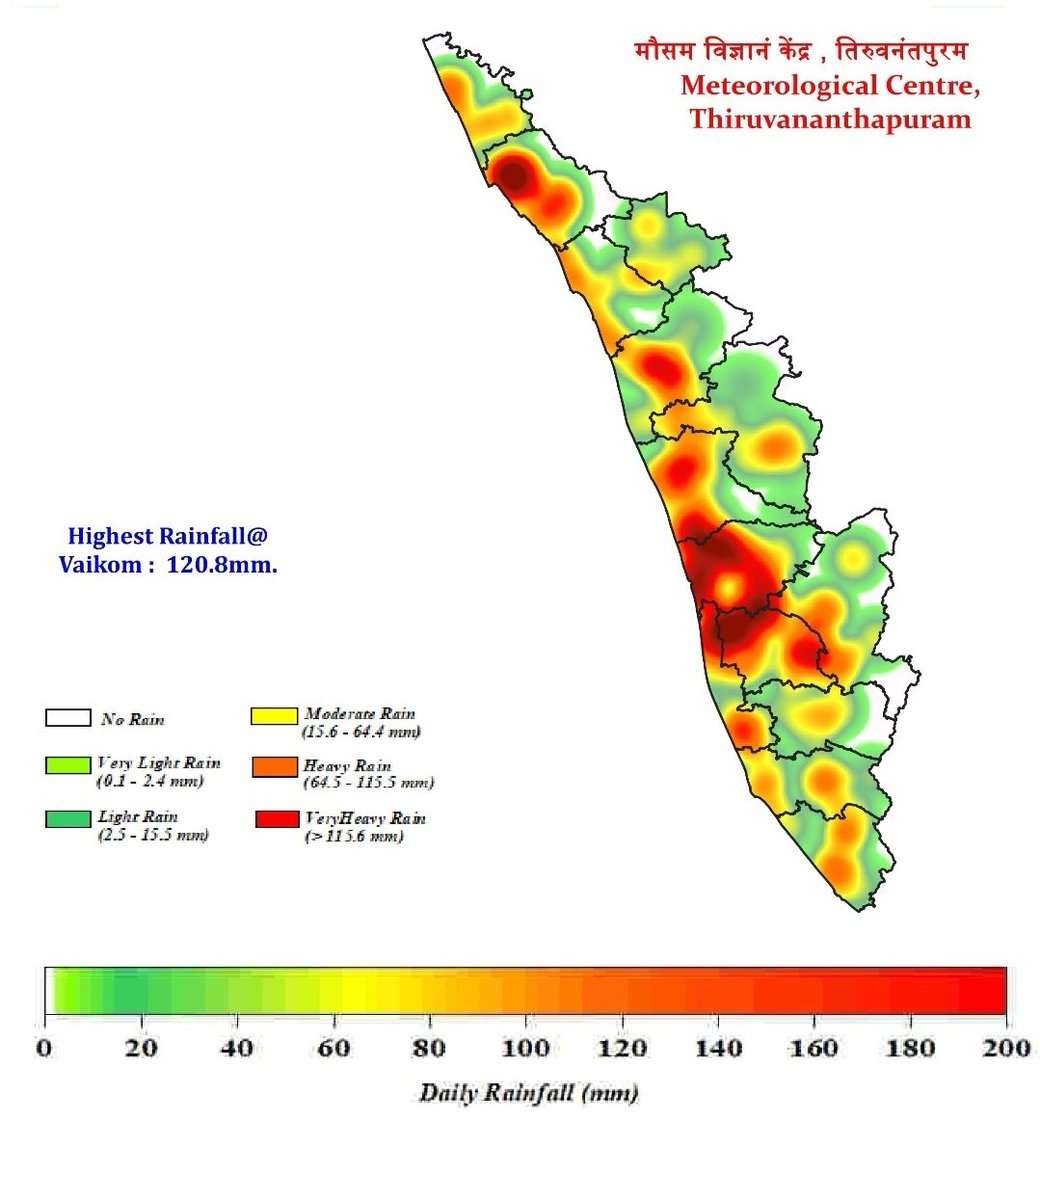 Wettest day in #Kerala up till now in June is 13th.  #Ernakulam, #Kannur, #Alappuzha, #Kottayam, #Thrissur, #Malappuram districts saw 100mm+ rains😍  Also #Kerala has got back in track from deficient to normal rains in June due to good rains last 7 days or so. https://t.co/8UFQxvzoBO